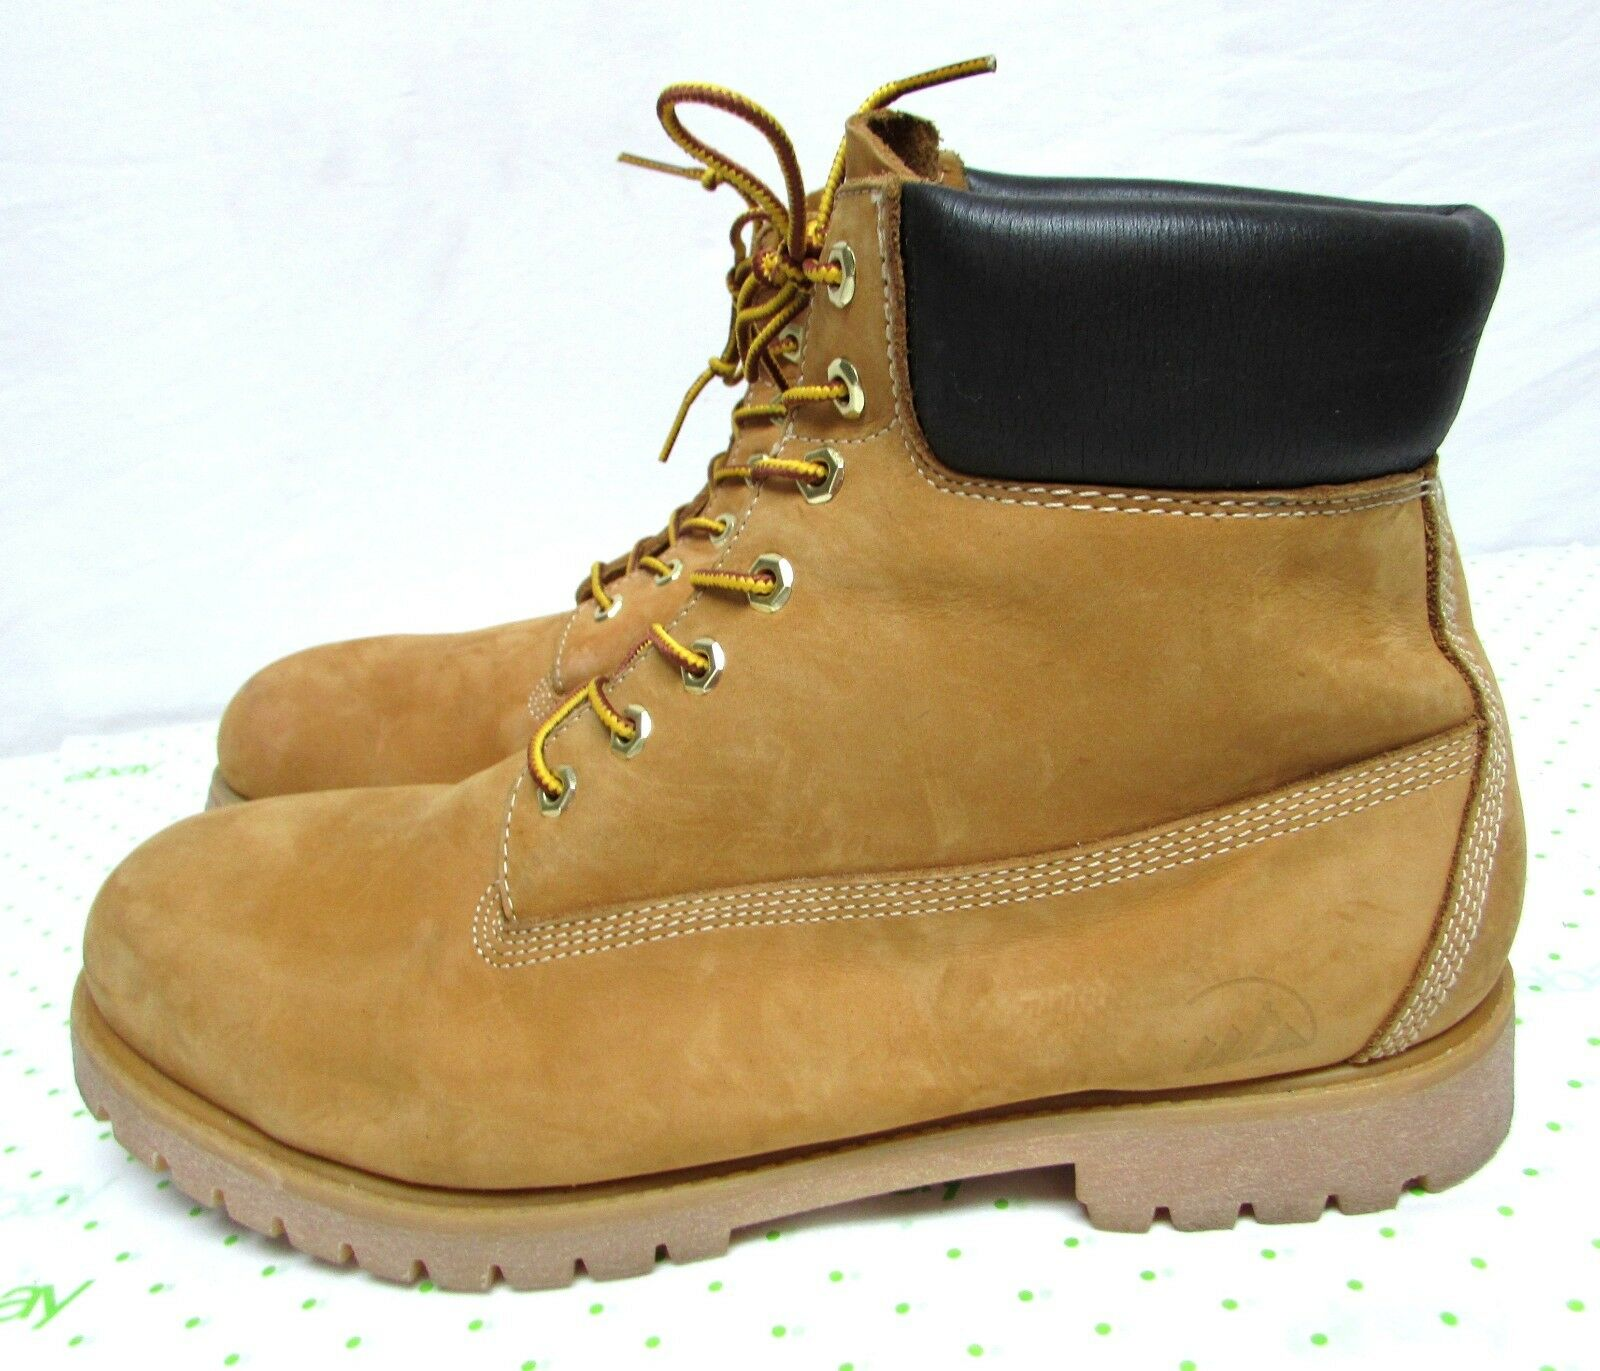 colorado men's boots ankle leather waterproof size 15 M hiking work